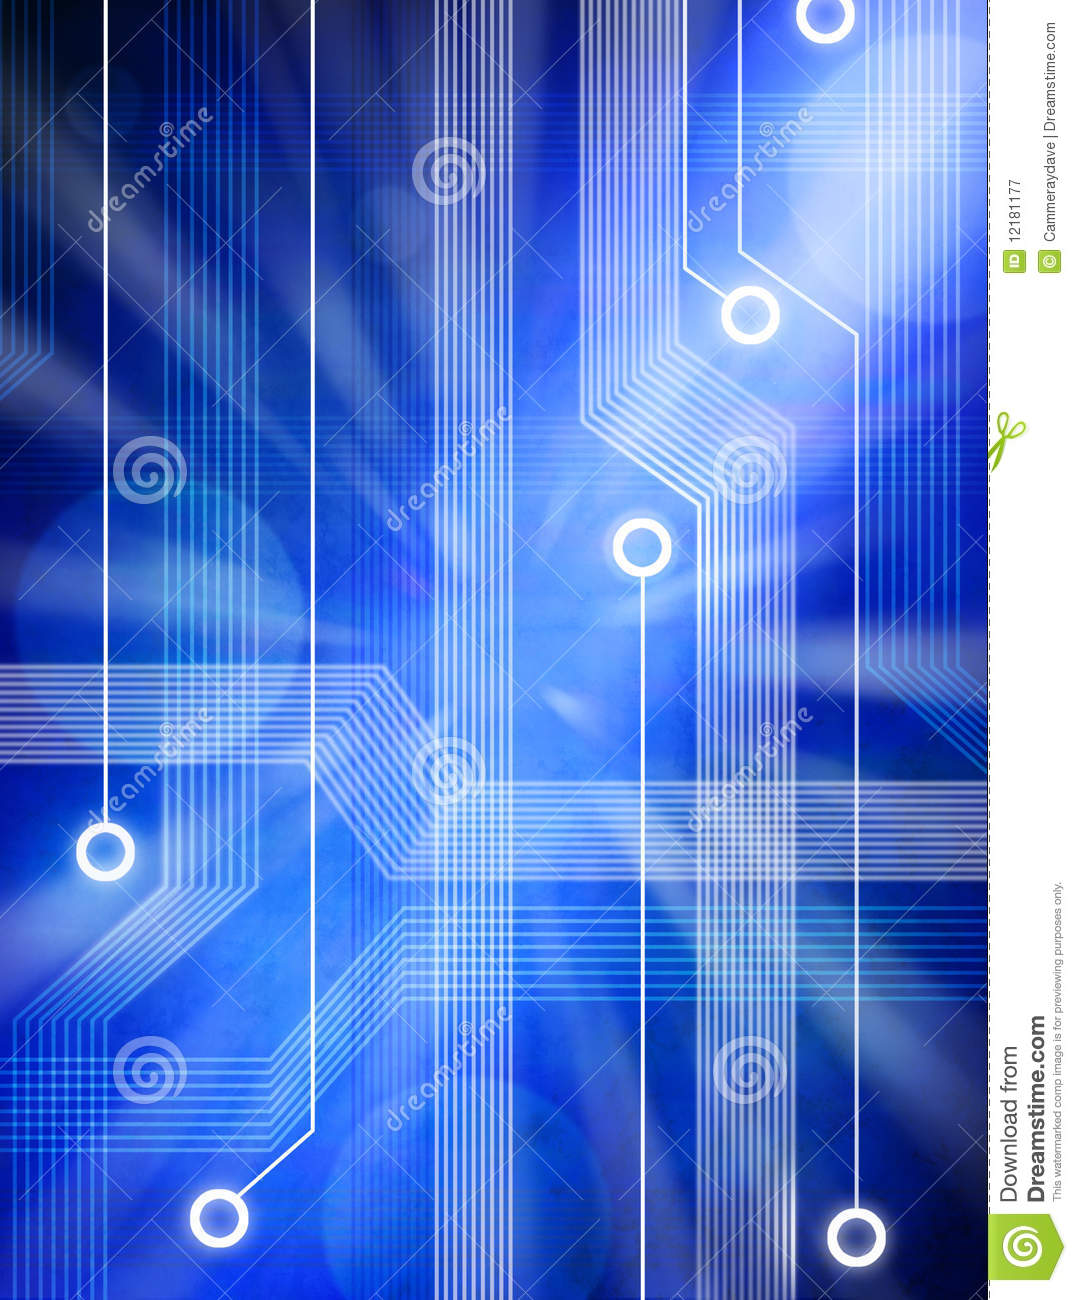 abstract network background - photo #34